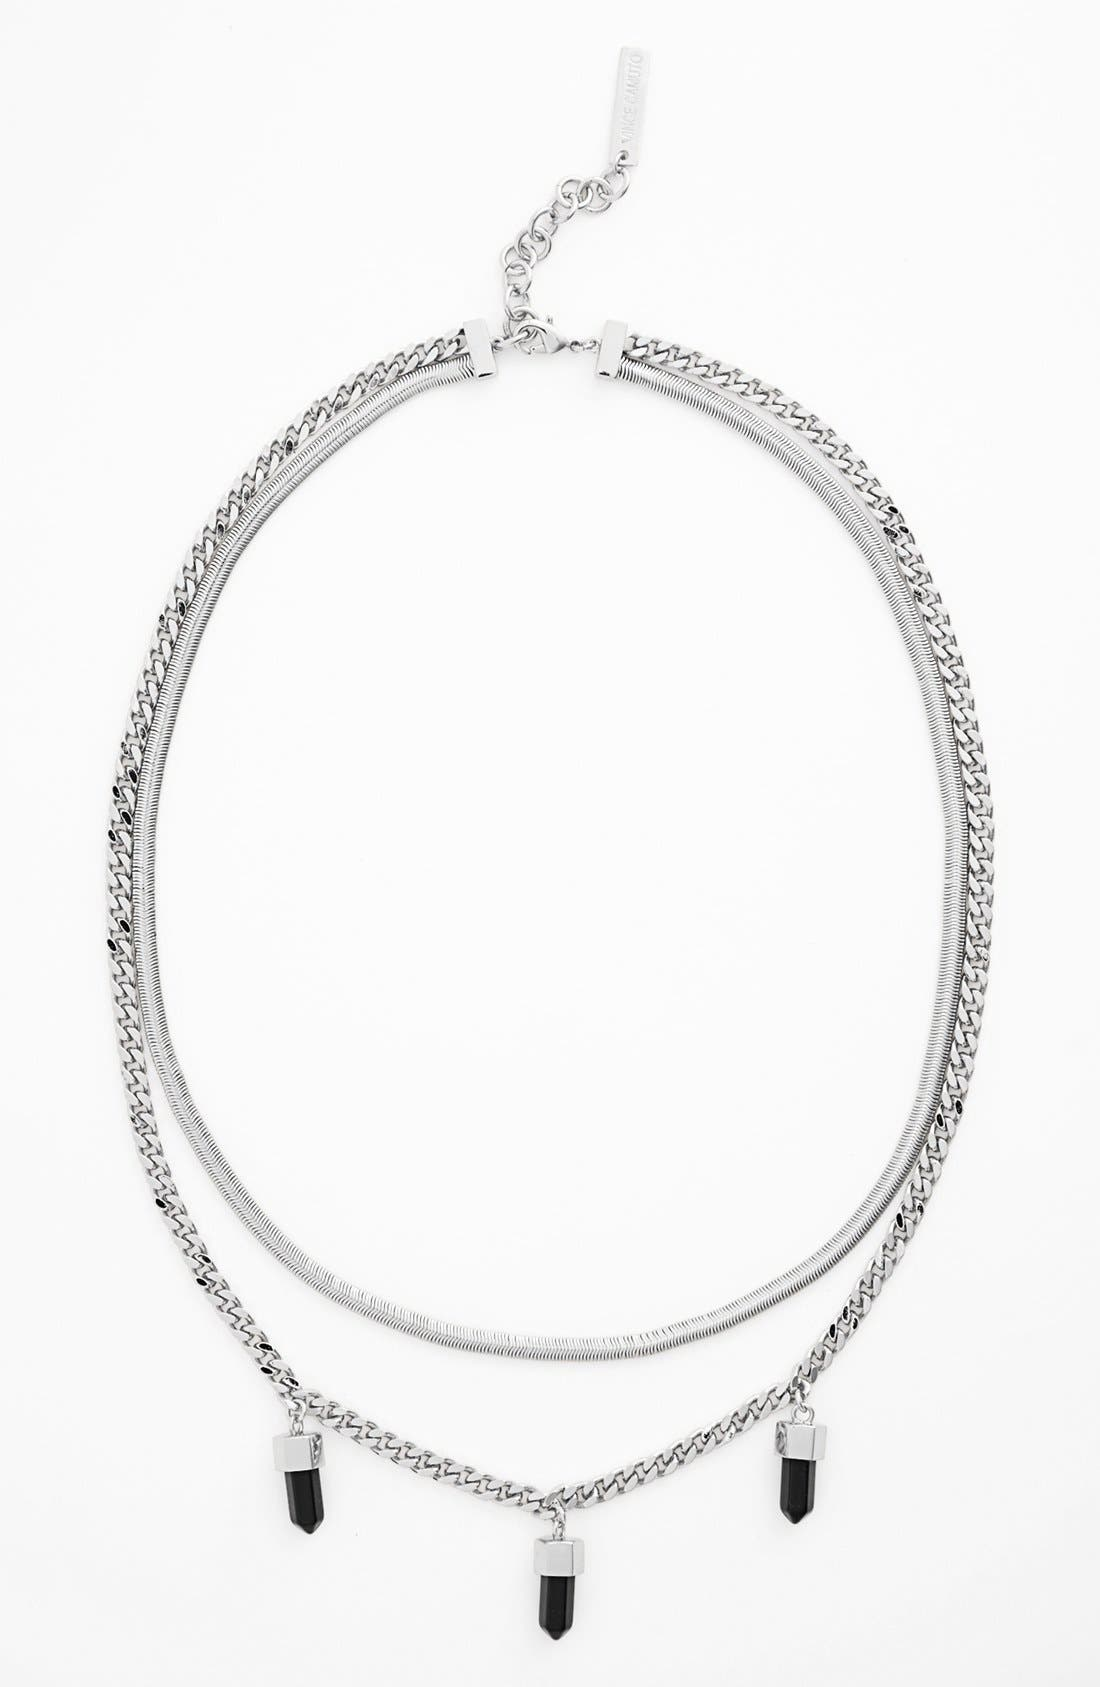 Alternate Image 1 Selected - Vince Camuto 'Bullet Proof' Multistrand Necklace